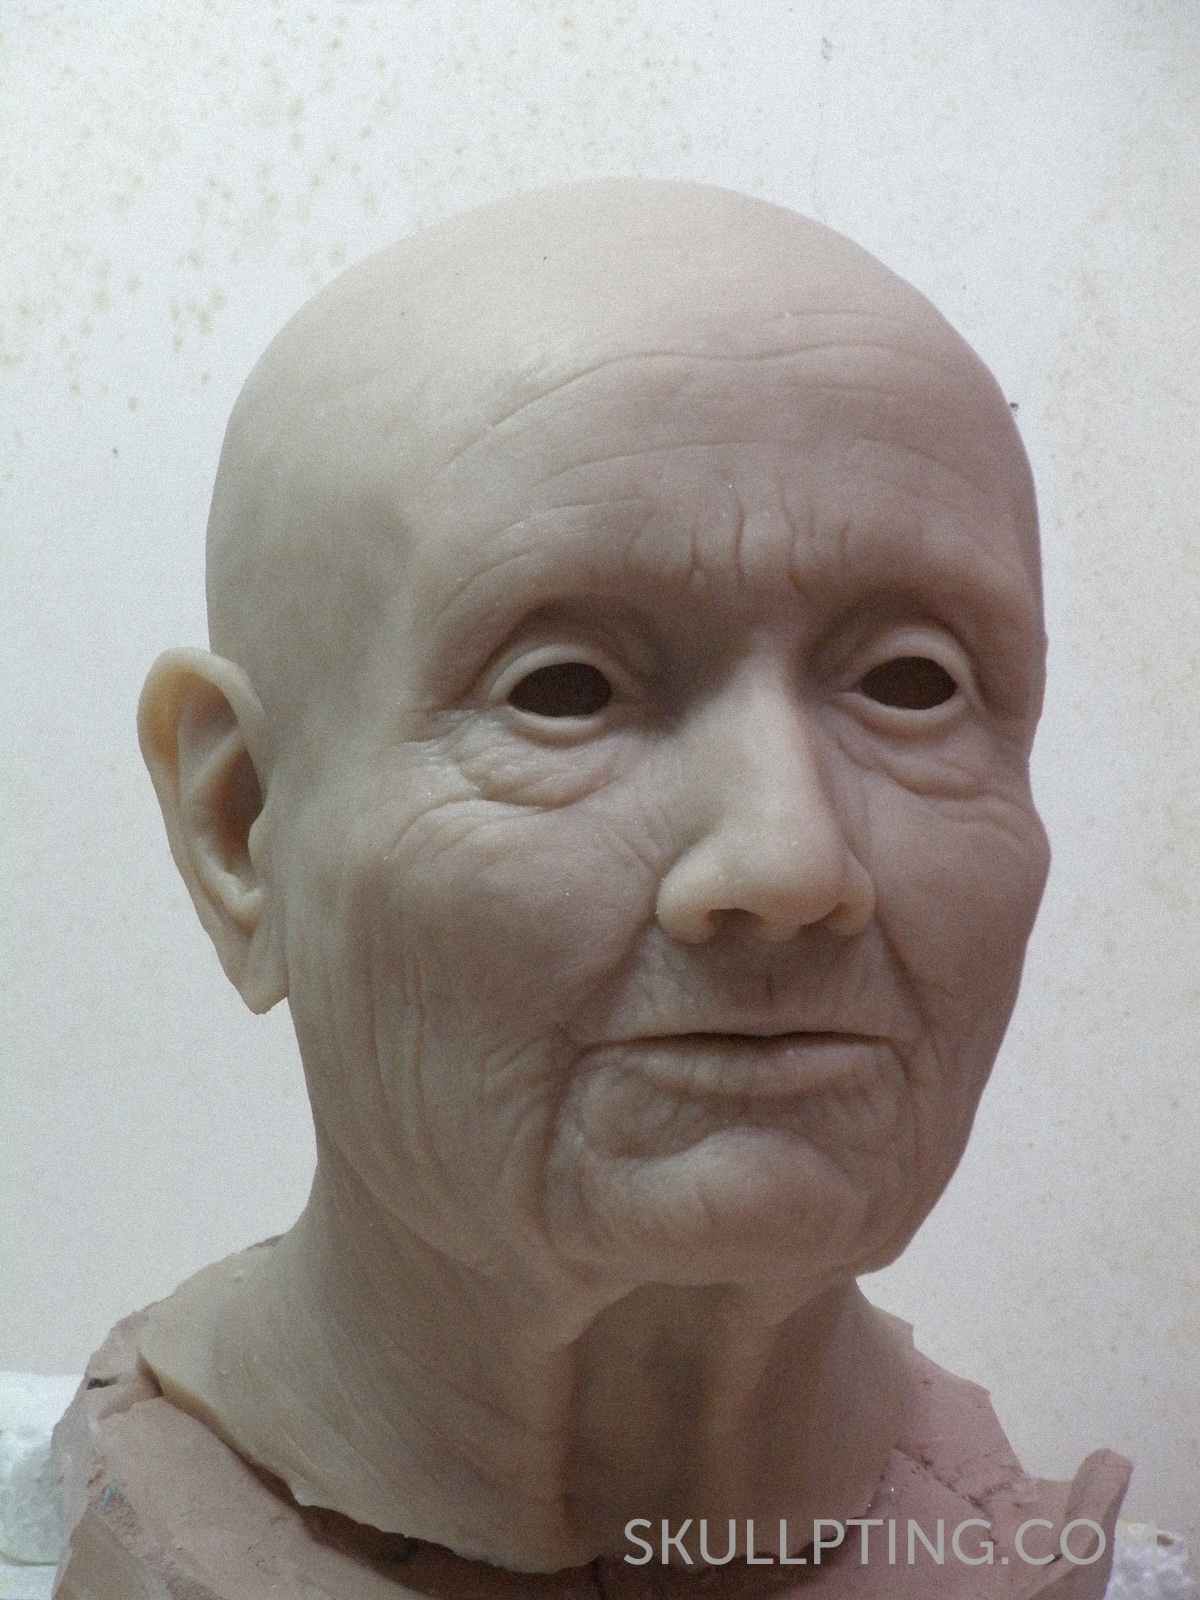 a copy of the sculpture cast in sillicone rubber